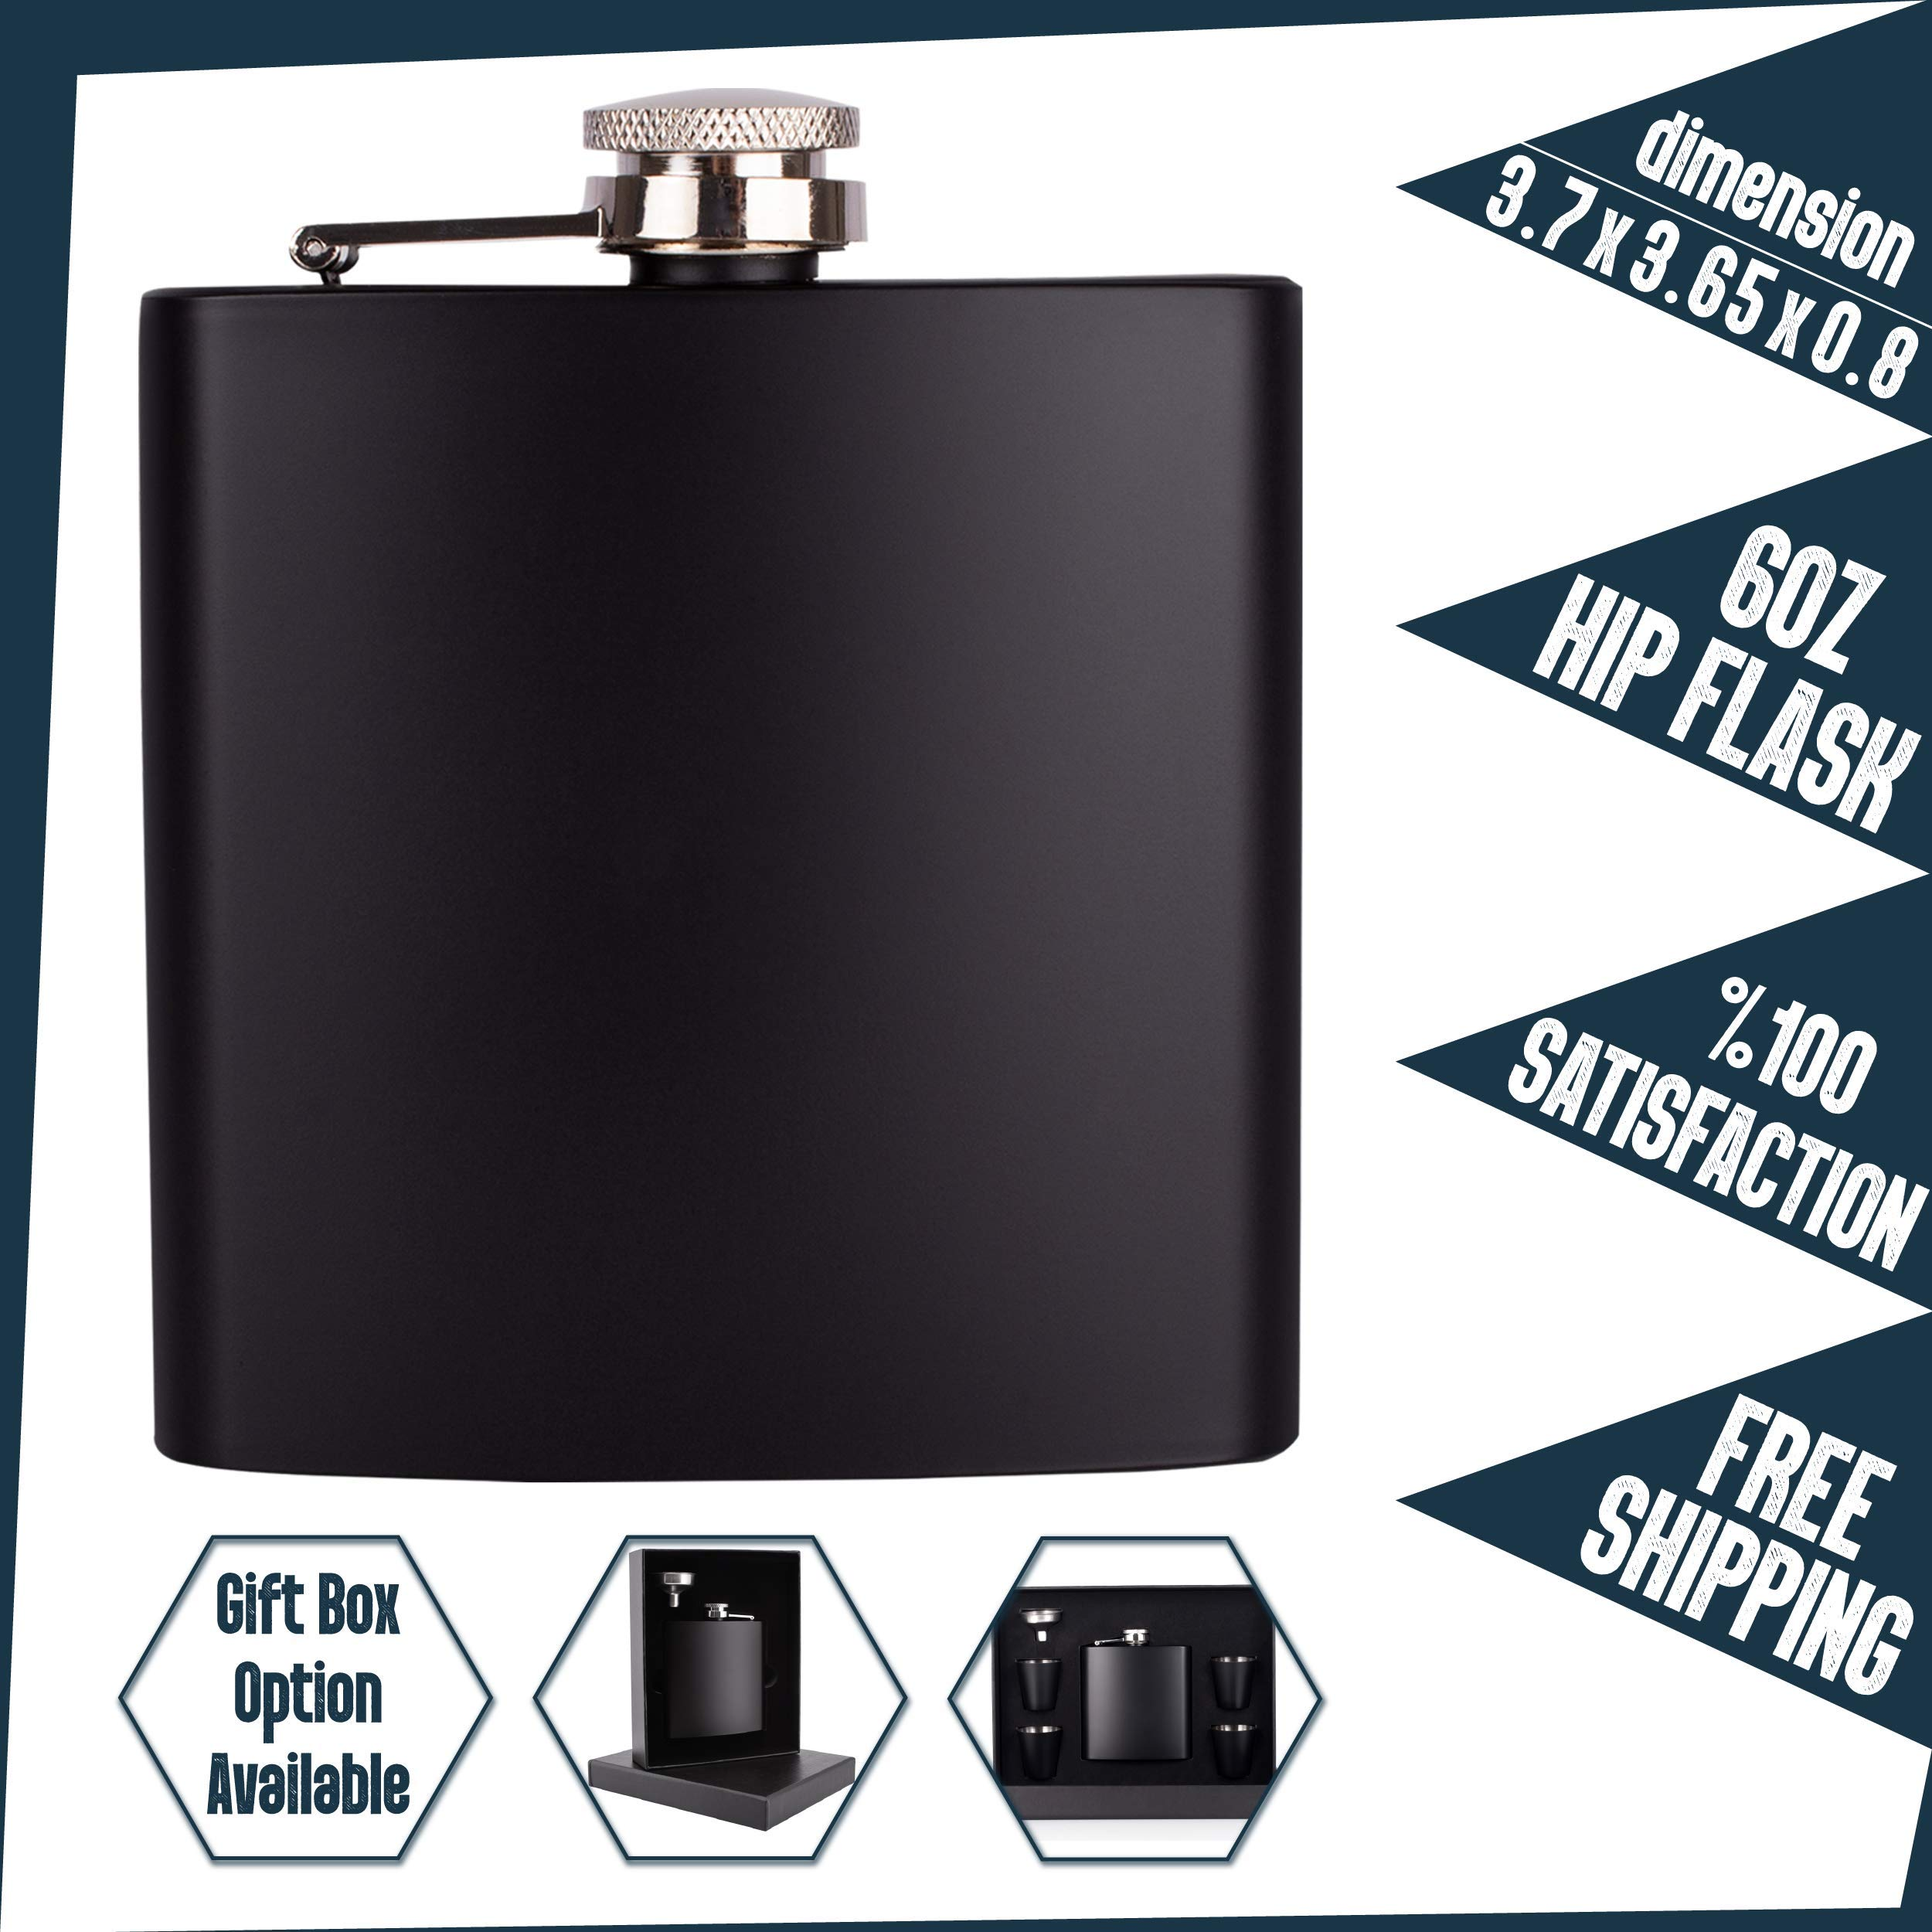 Personalizedgiftland Personalized Flask, Set Of 6 - Customized Flask Groomsmen Gifts For Wedding Favors, Personalized Groomsman gift - Stainless Steel Engraves Flasks w Gift Box Options - 6oz, Black by PersonalizedGiftLand (Image #5)